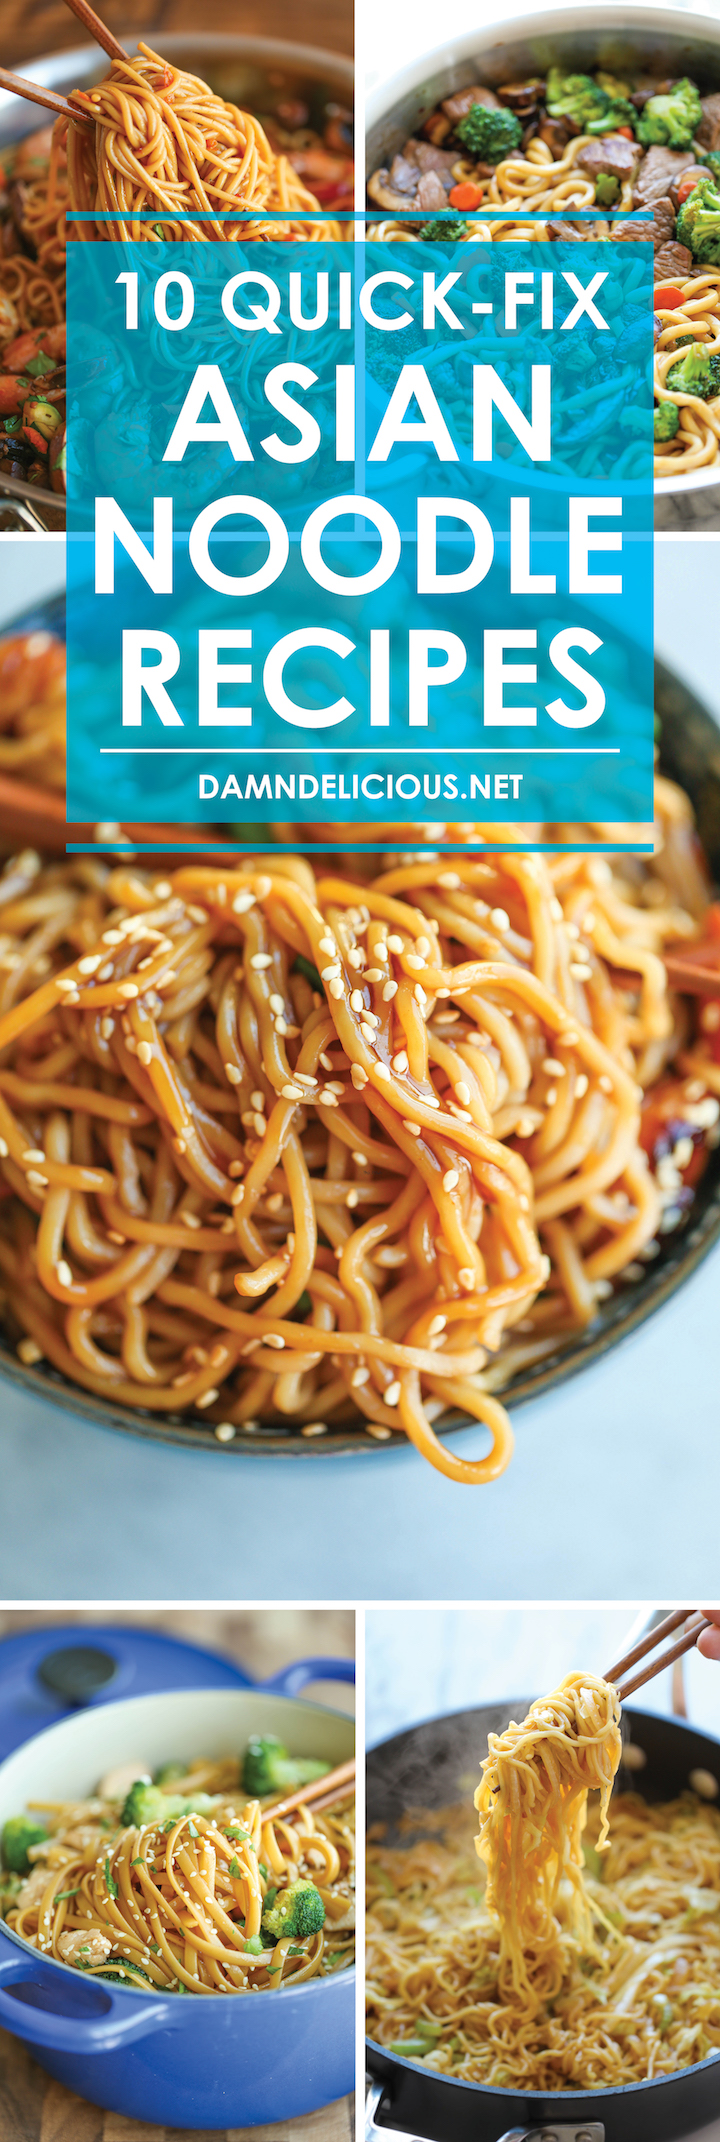 10 Quick-Fix Asian Noodle Recipes - Fast, cheap and quick! And you can use any kind of noodles you have on hand - fettuccine, spaghetti, ramen, anything!